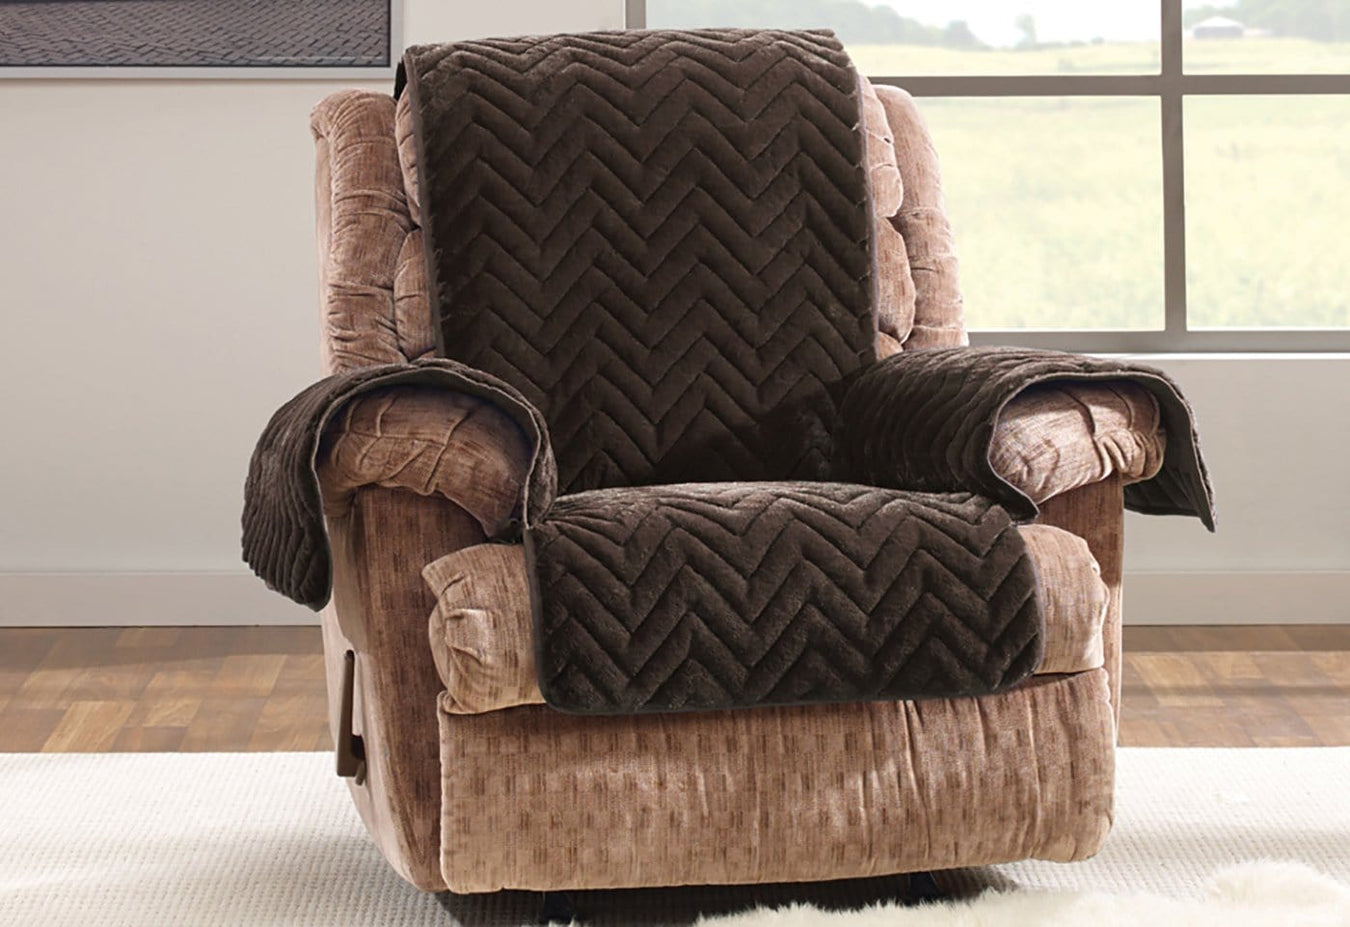 Amazing Faux Fur Chevron Recliner Furniture Cover Recliner Covers Gmtry Best Dining Table And Chair Ideas Images Gmtryco